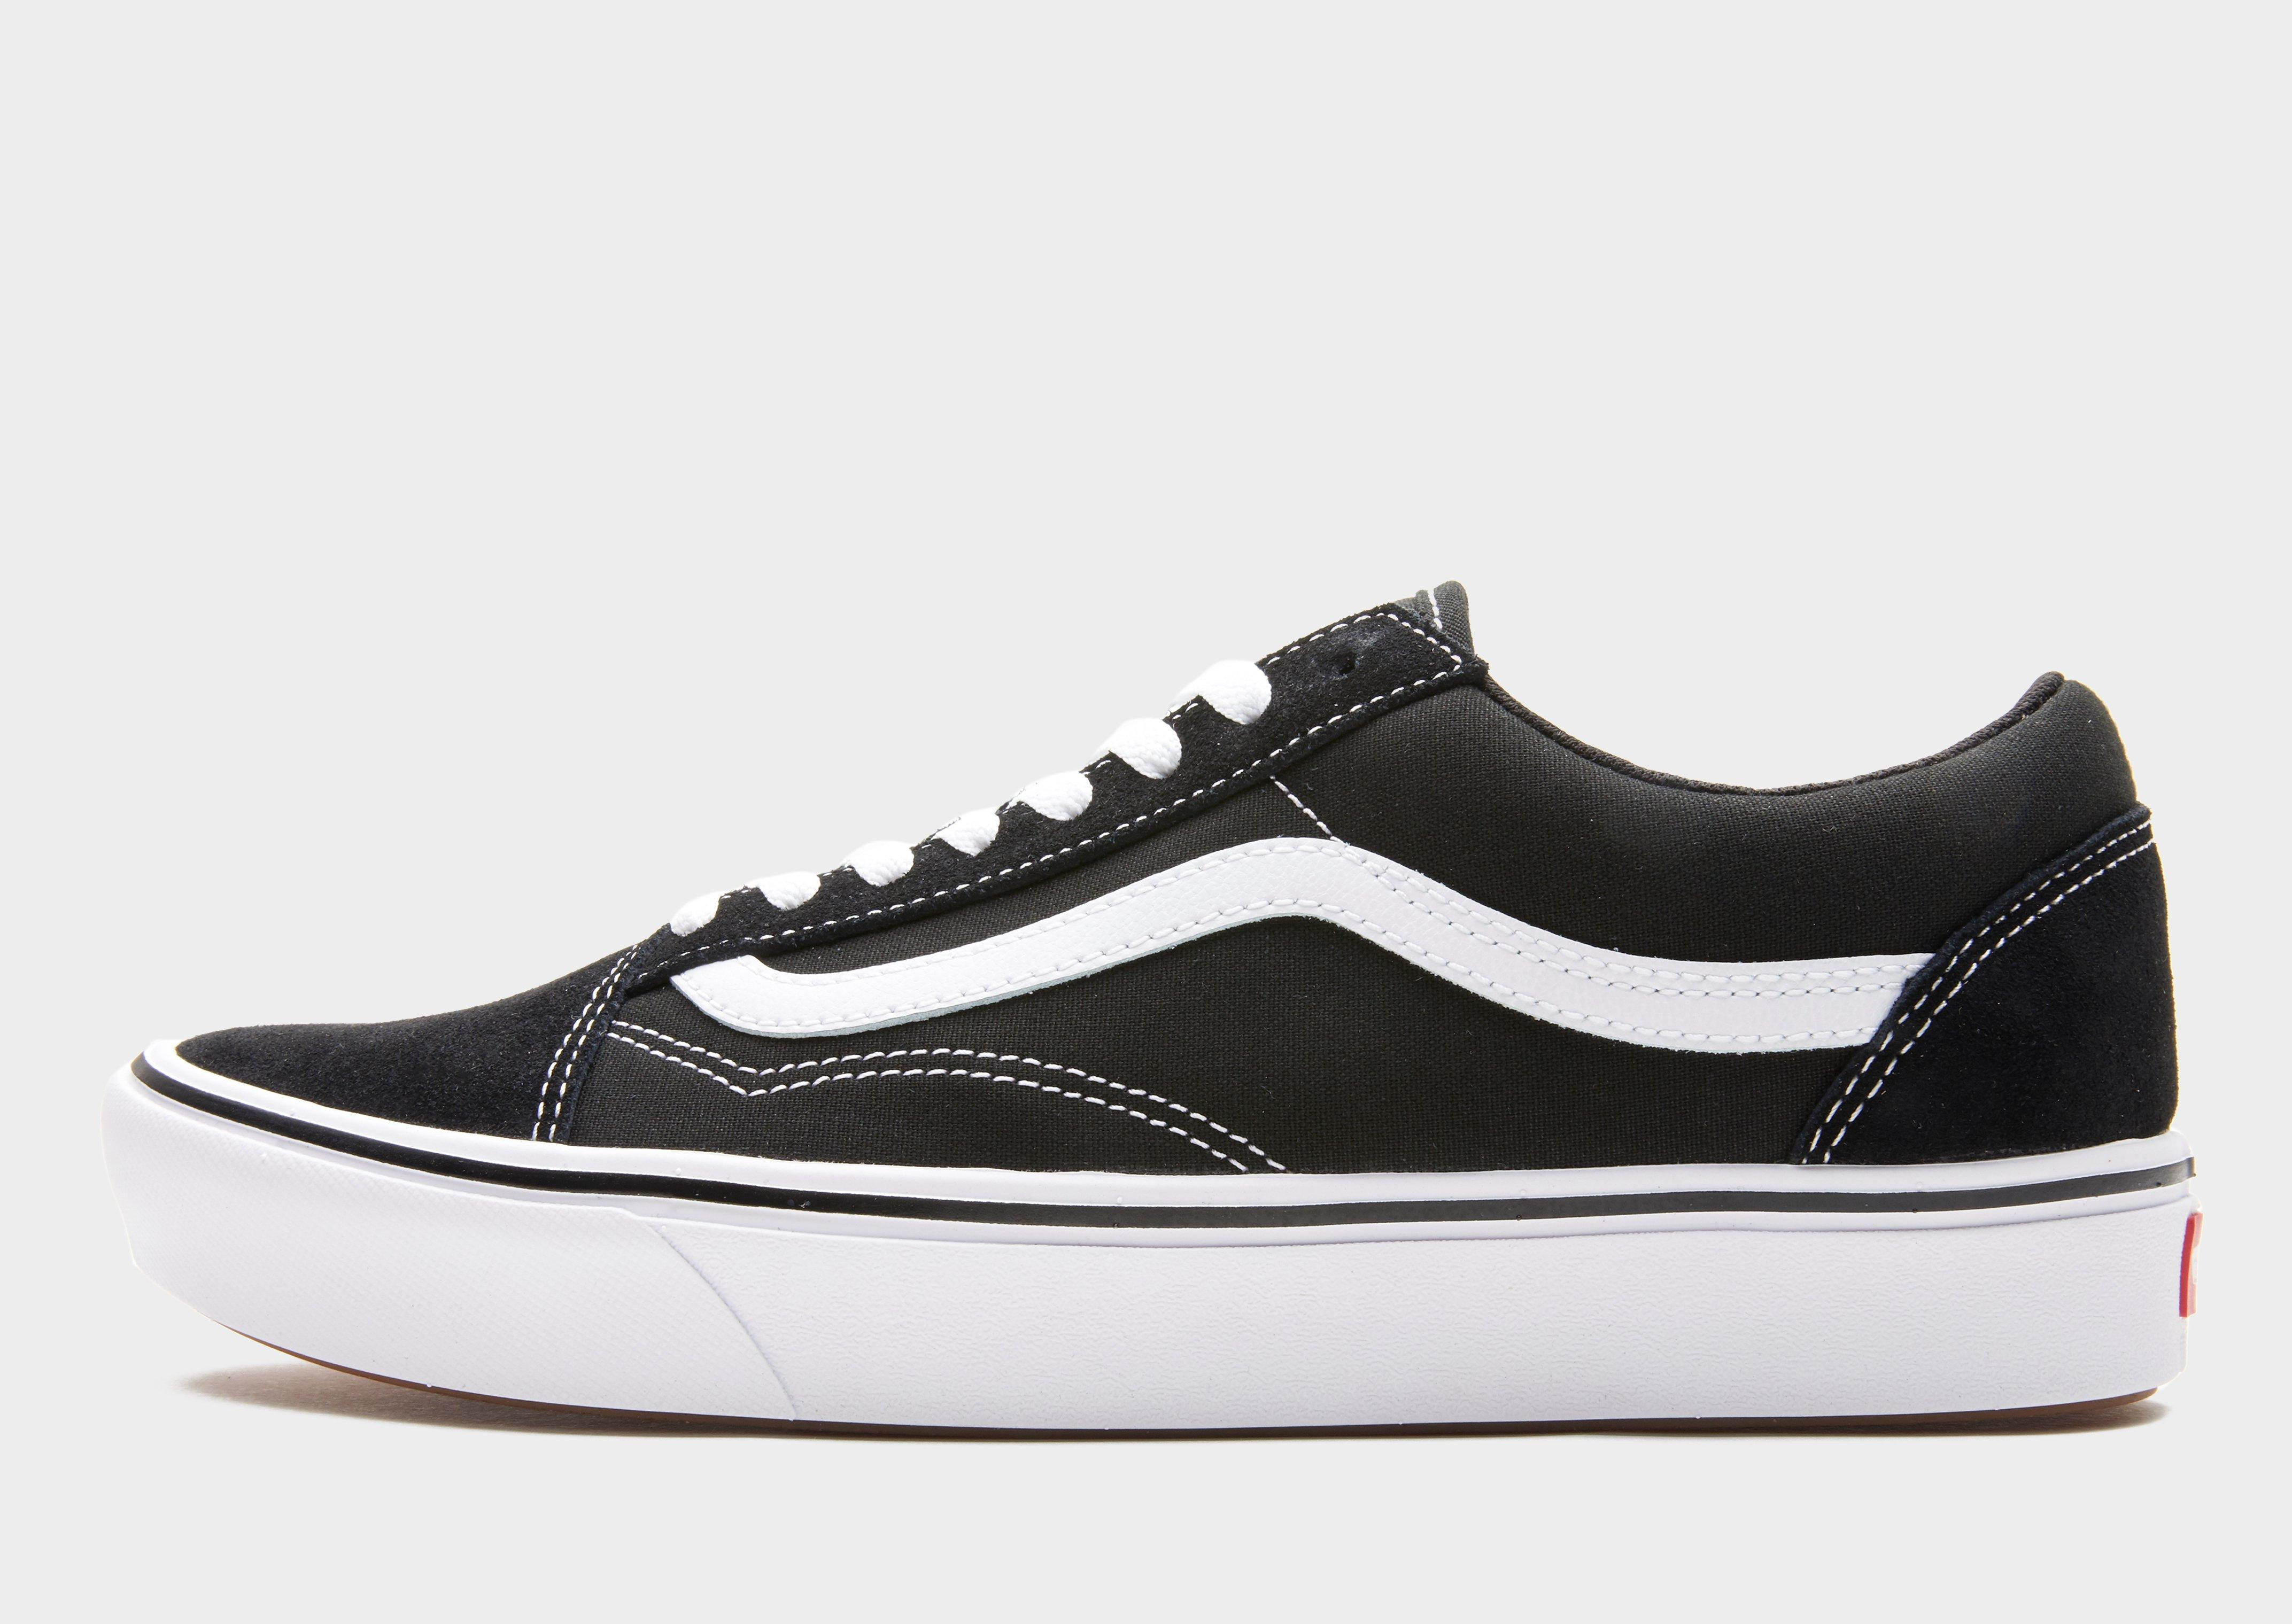 where to buy vans in malaysia